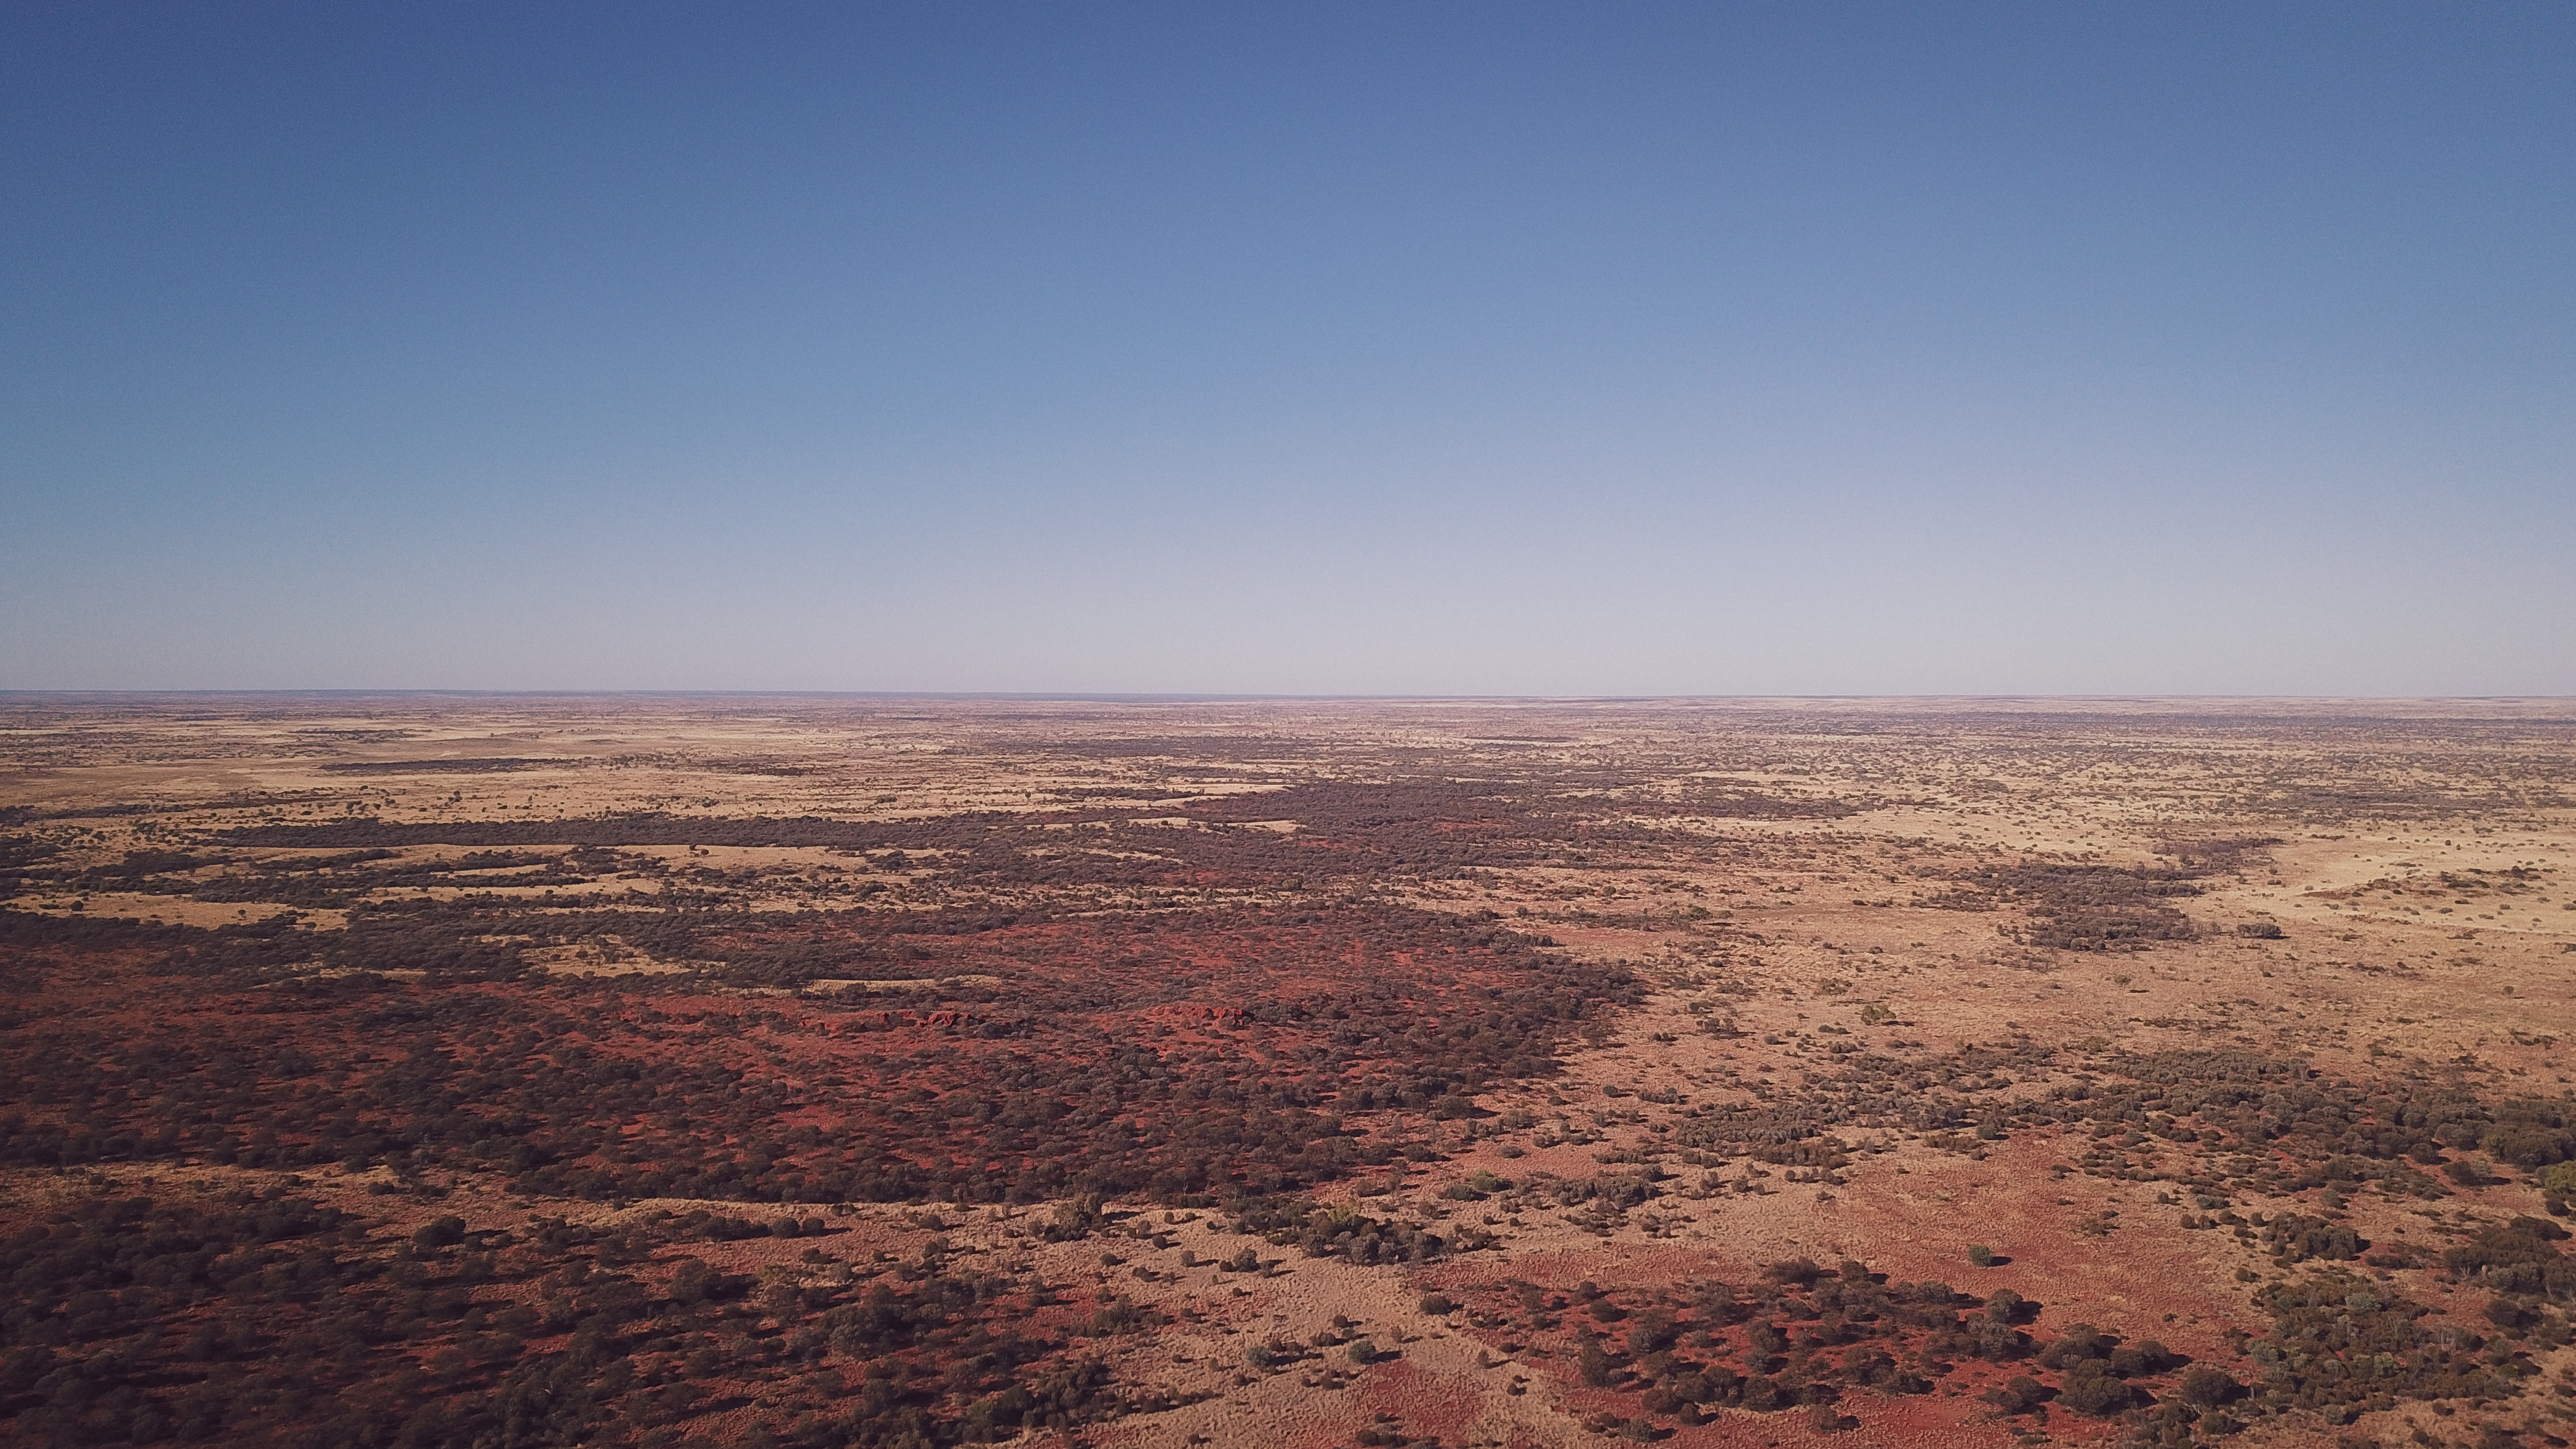 Wide landscape of the semi arid environment photographed from the air